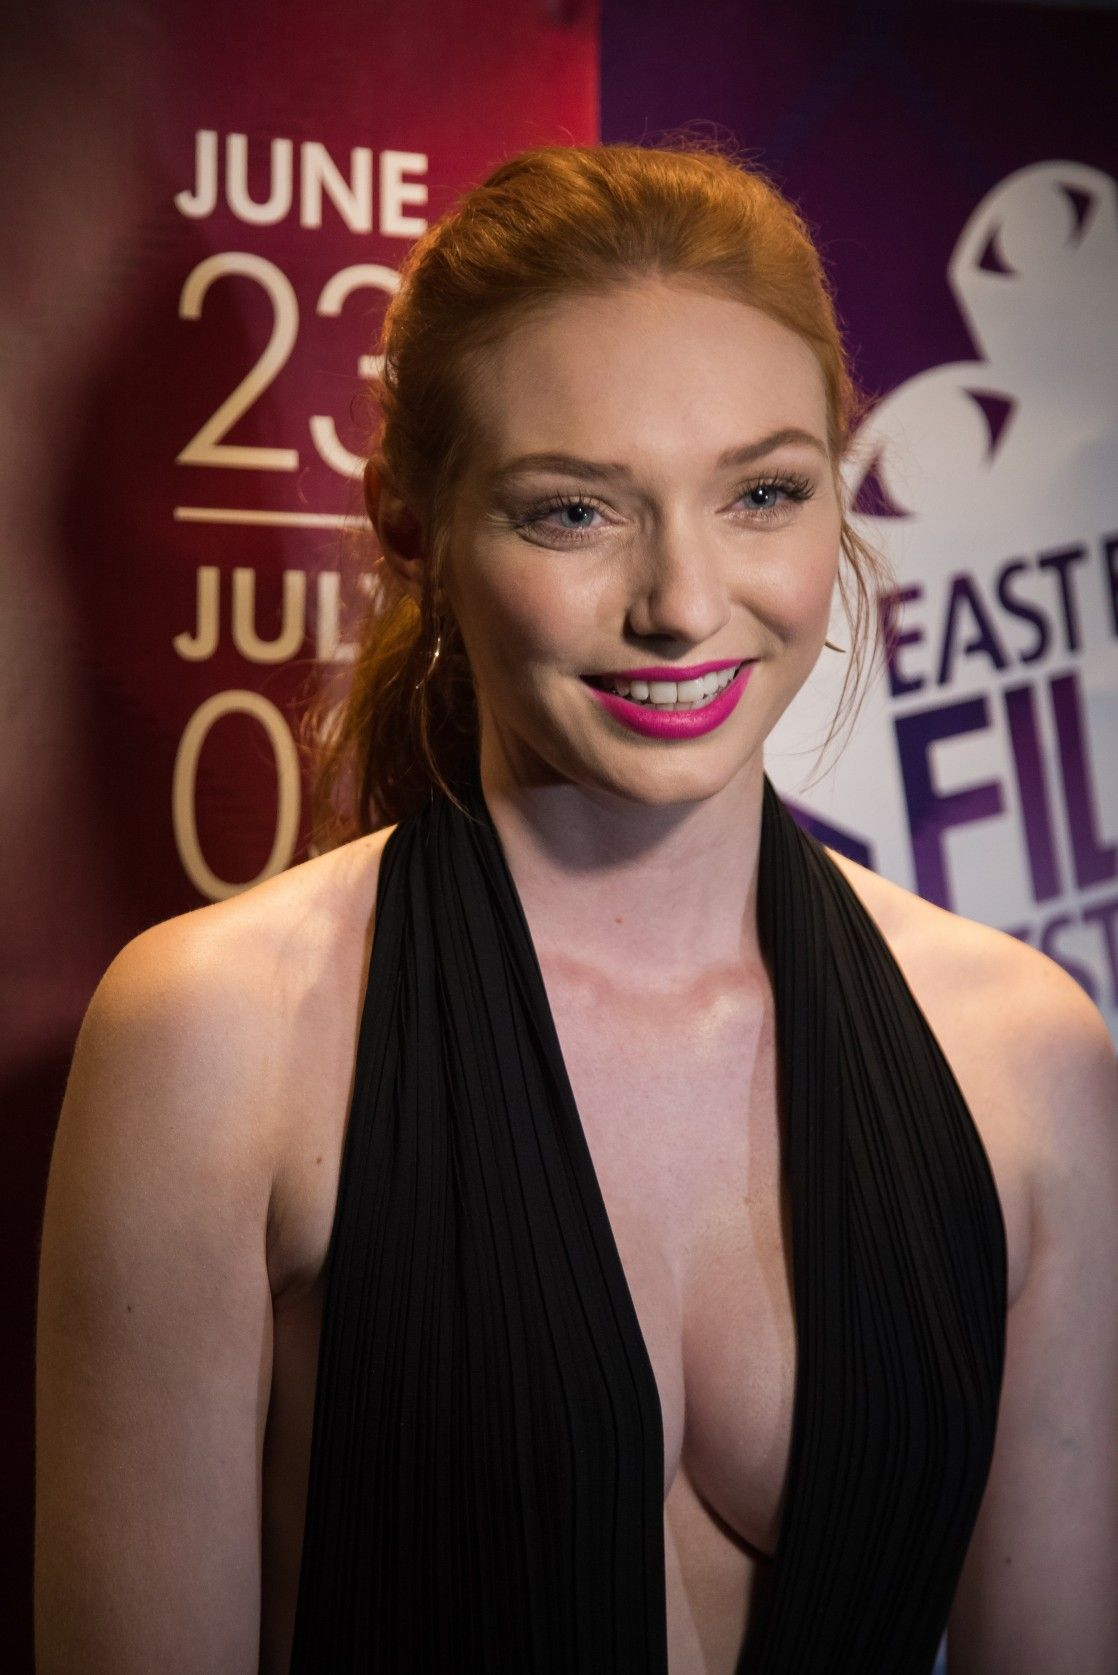 Eleanor Tomlinson naked (57 foto and video), Topless, Cleavage, Selfie, swimsuit 2018